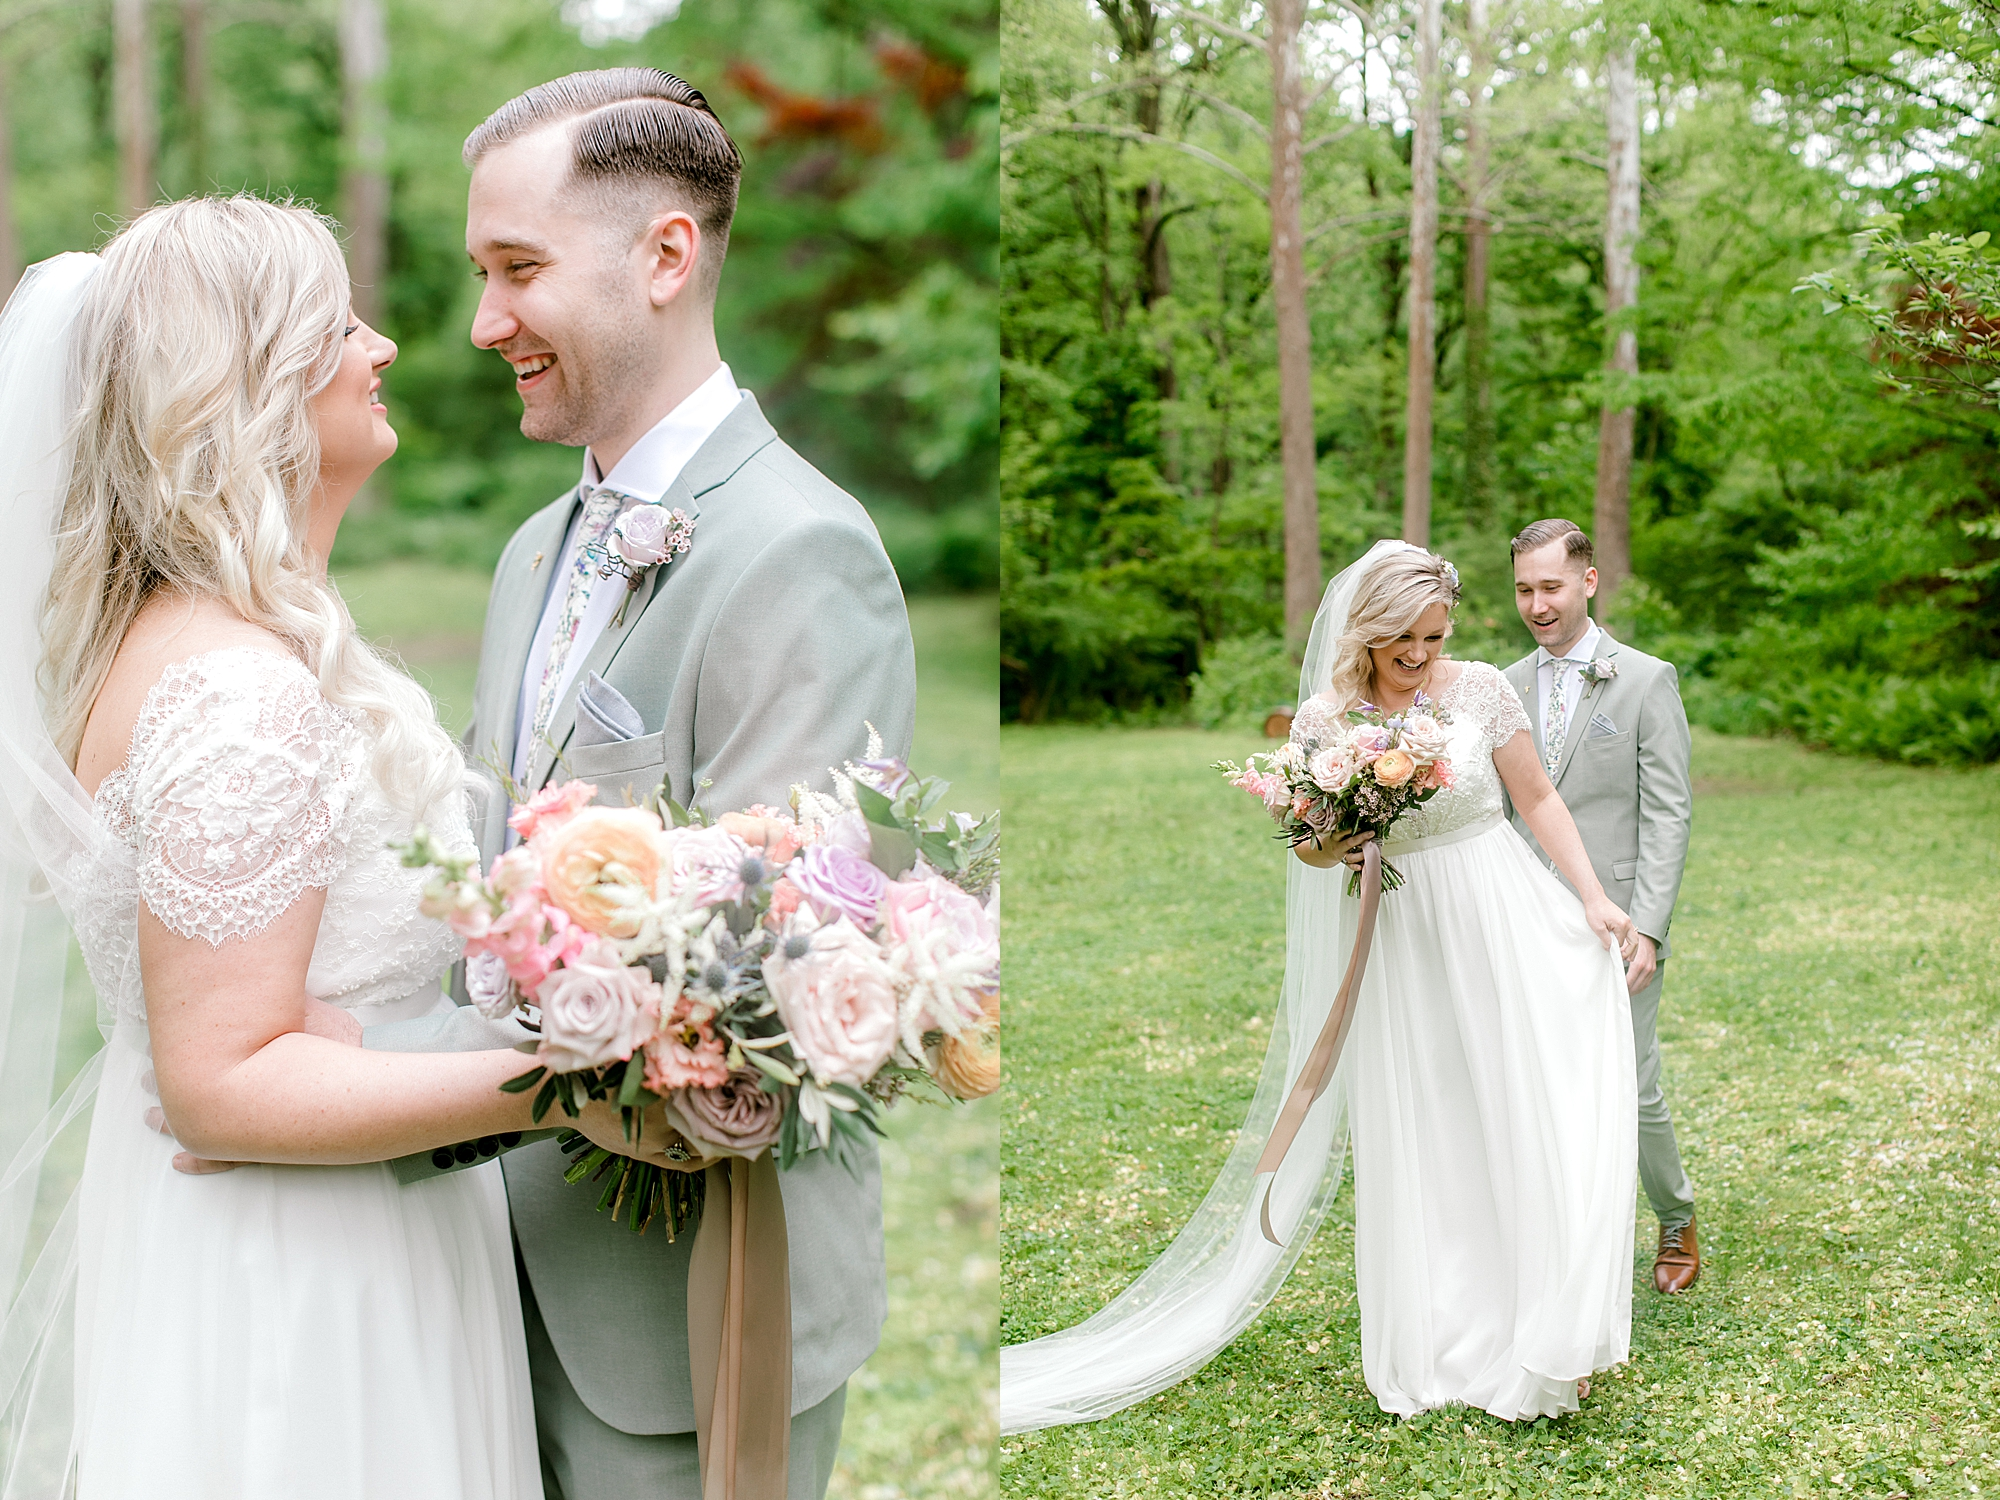 Intimate and Sweet Estate Wedding Photography by Magdalena Studios 0021